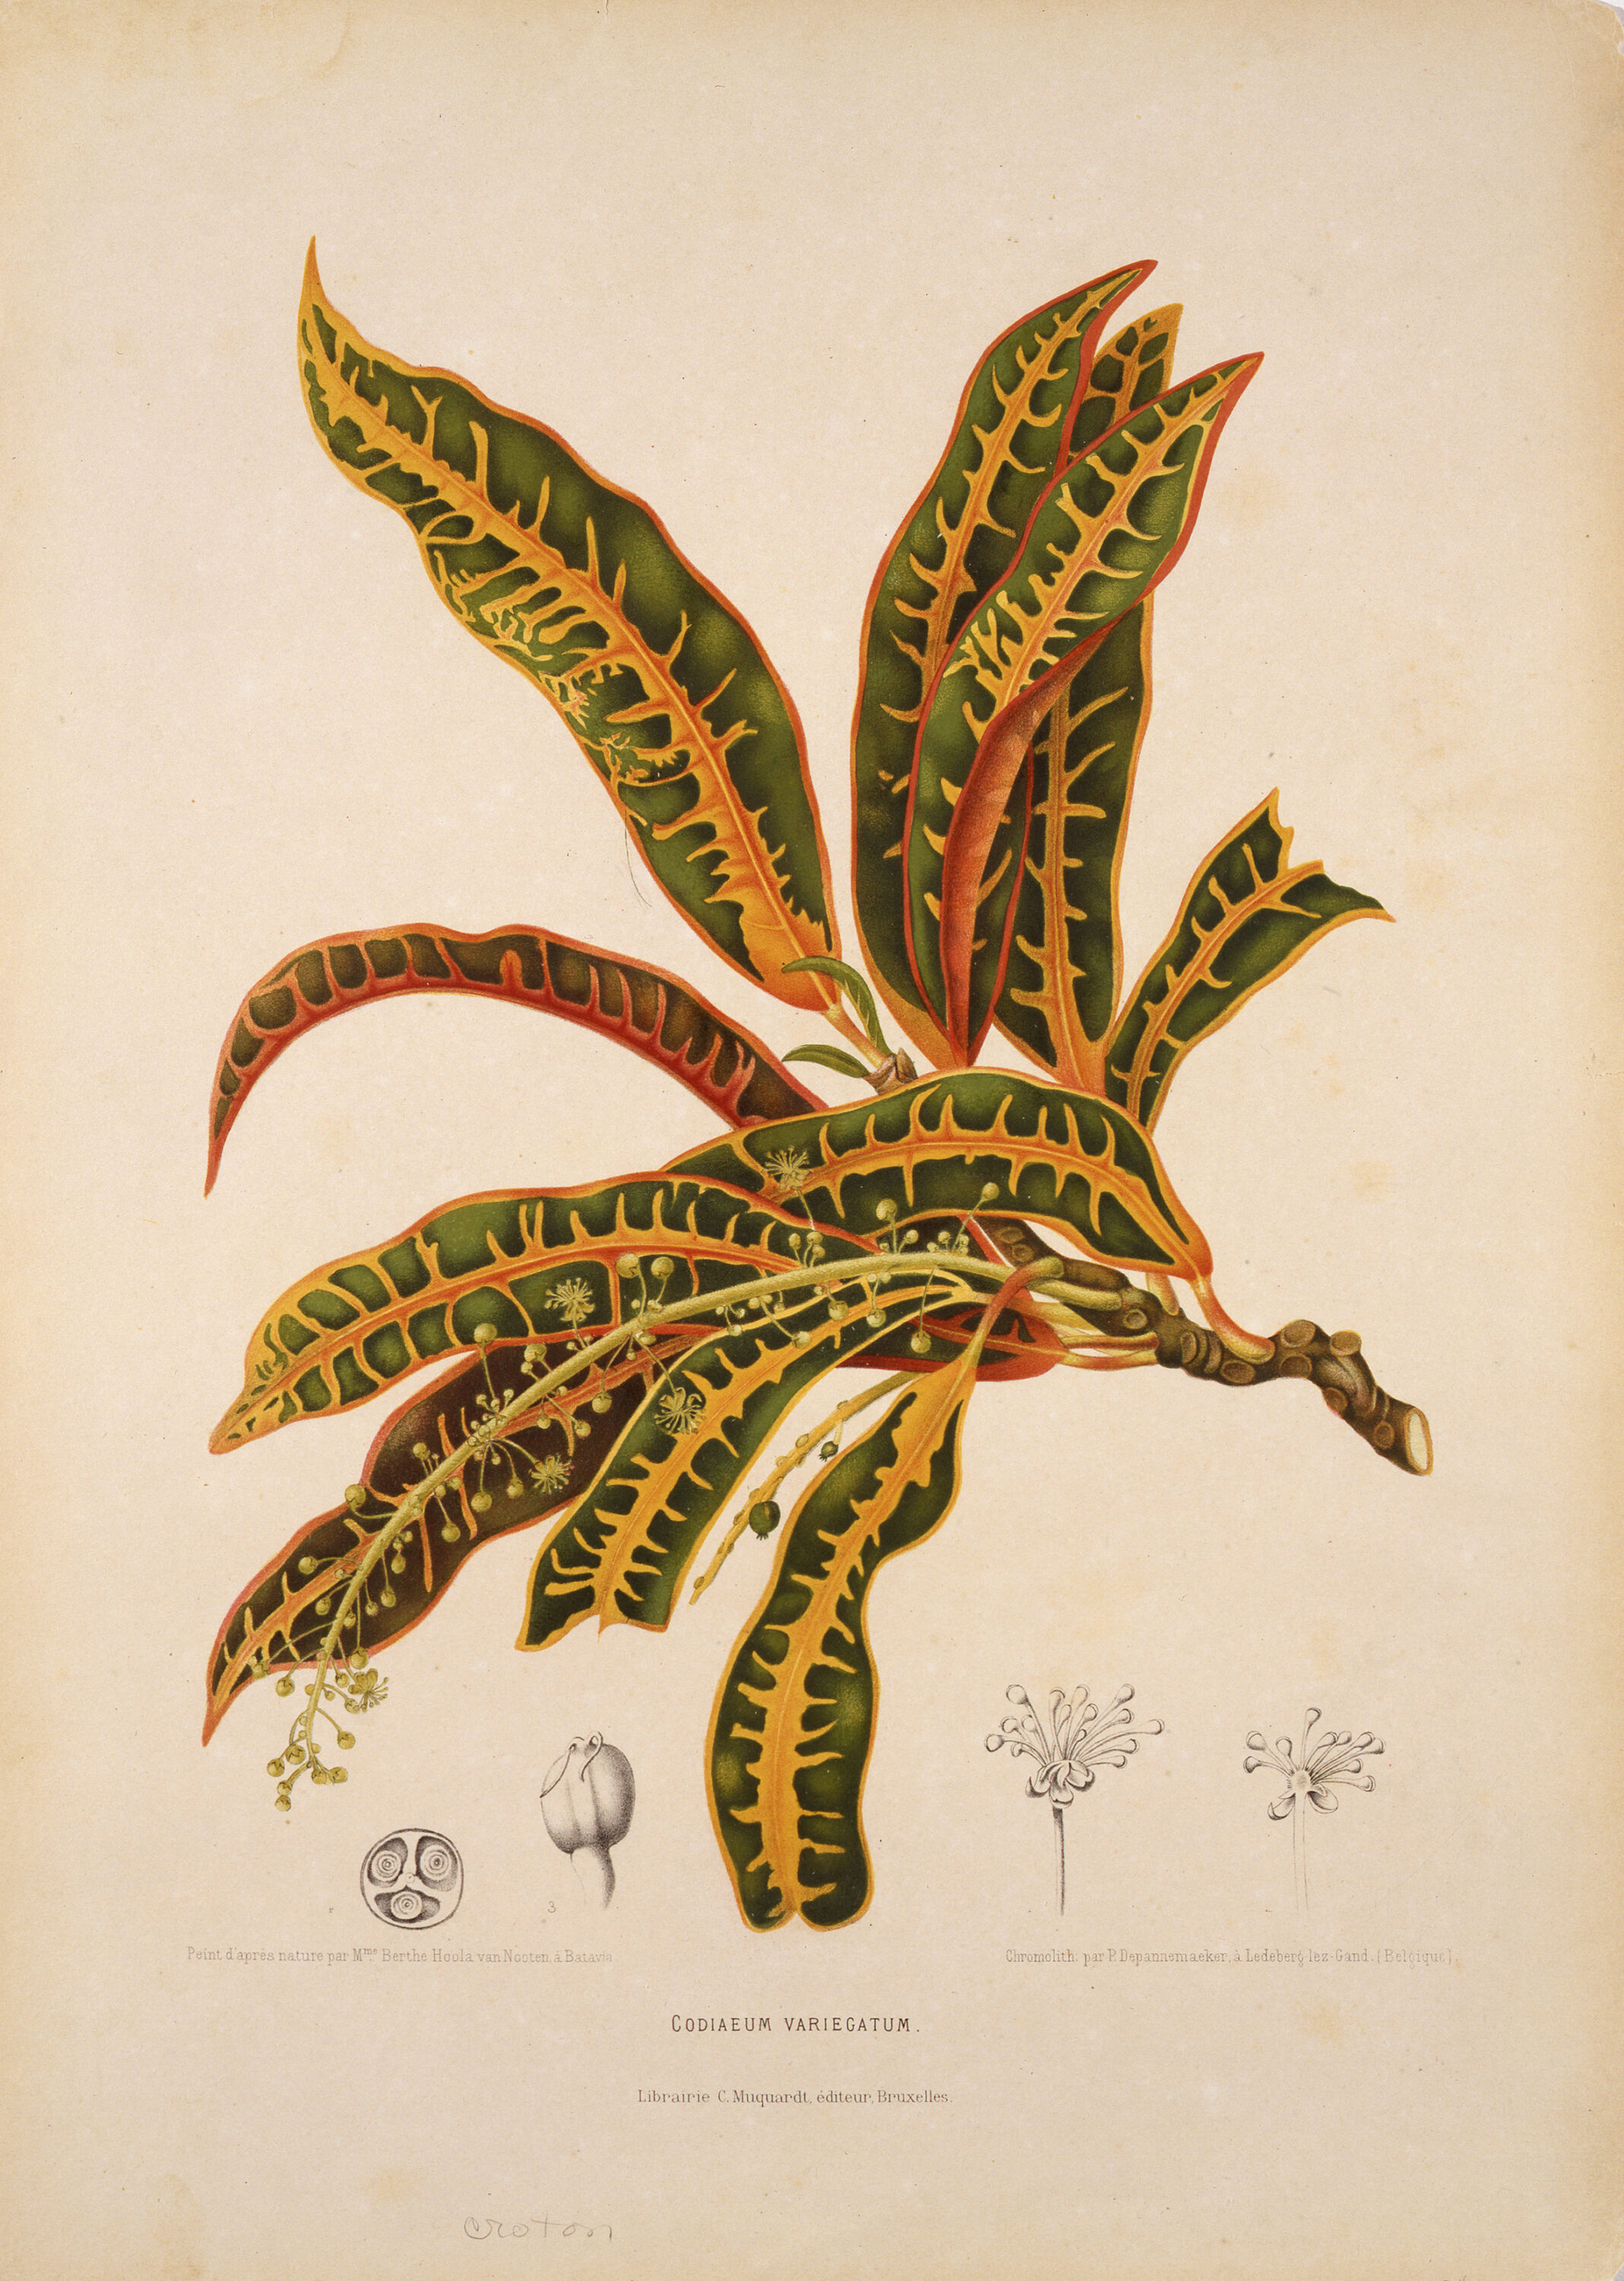 A sprig of a plant with long leaves shaped like large string beans. The leaves are a deep green with goldenrod yellow edges and veins, sprouting from a brown twig. The plant is printed on white paper, and at the bottom are four little black sketches of other plants and a label.